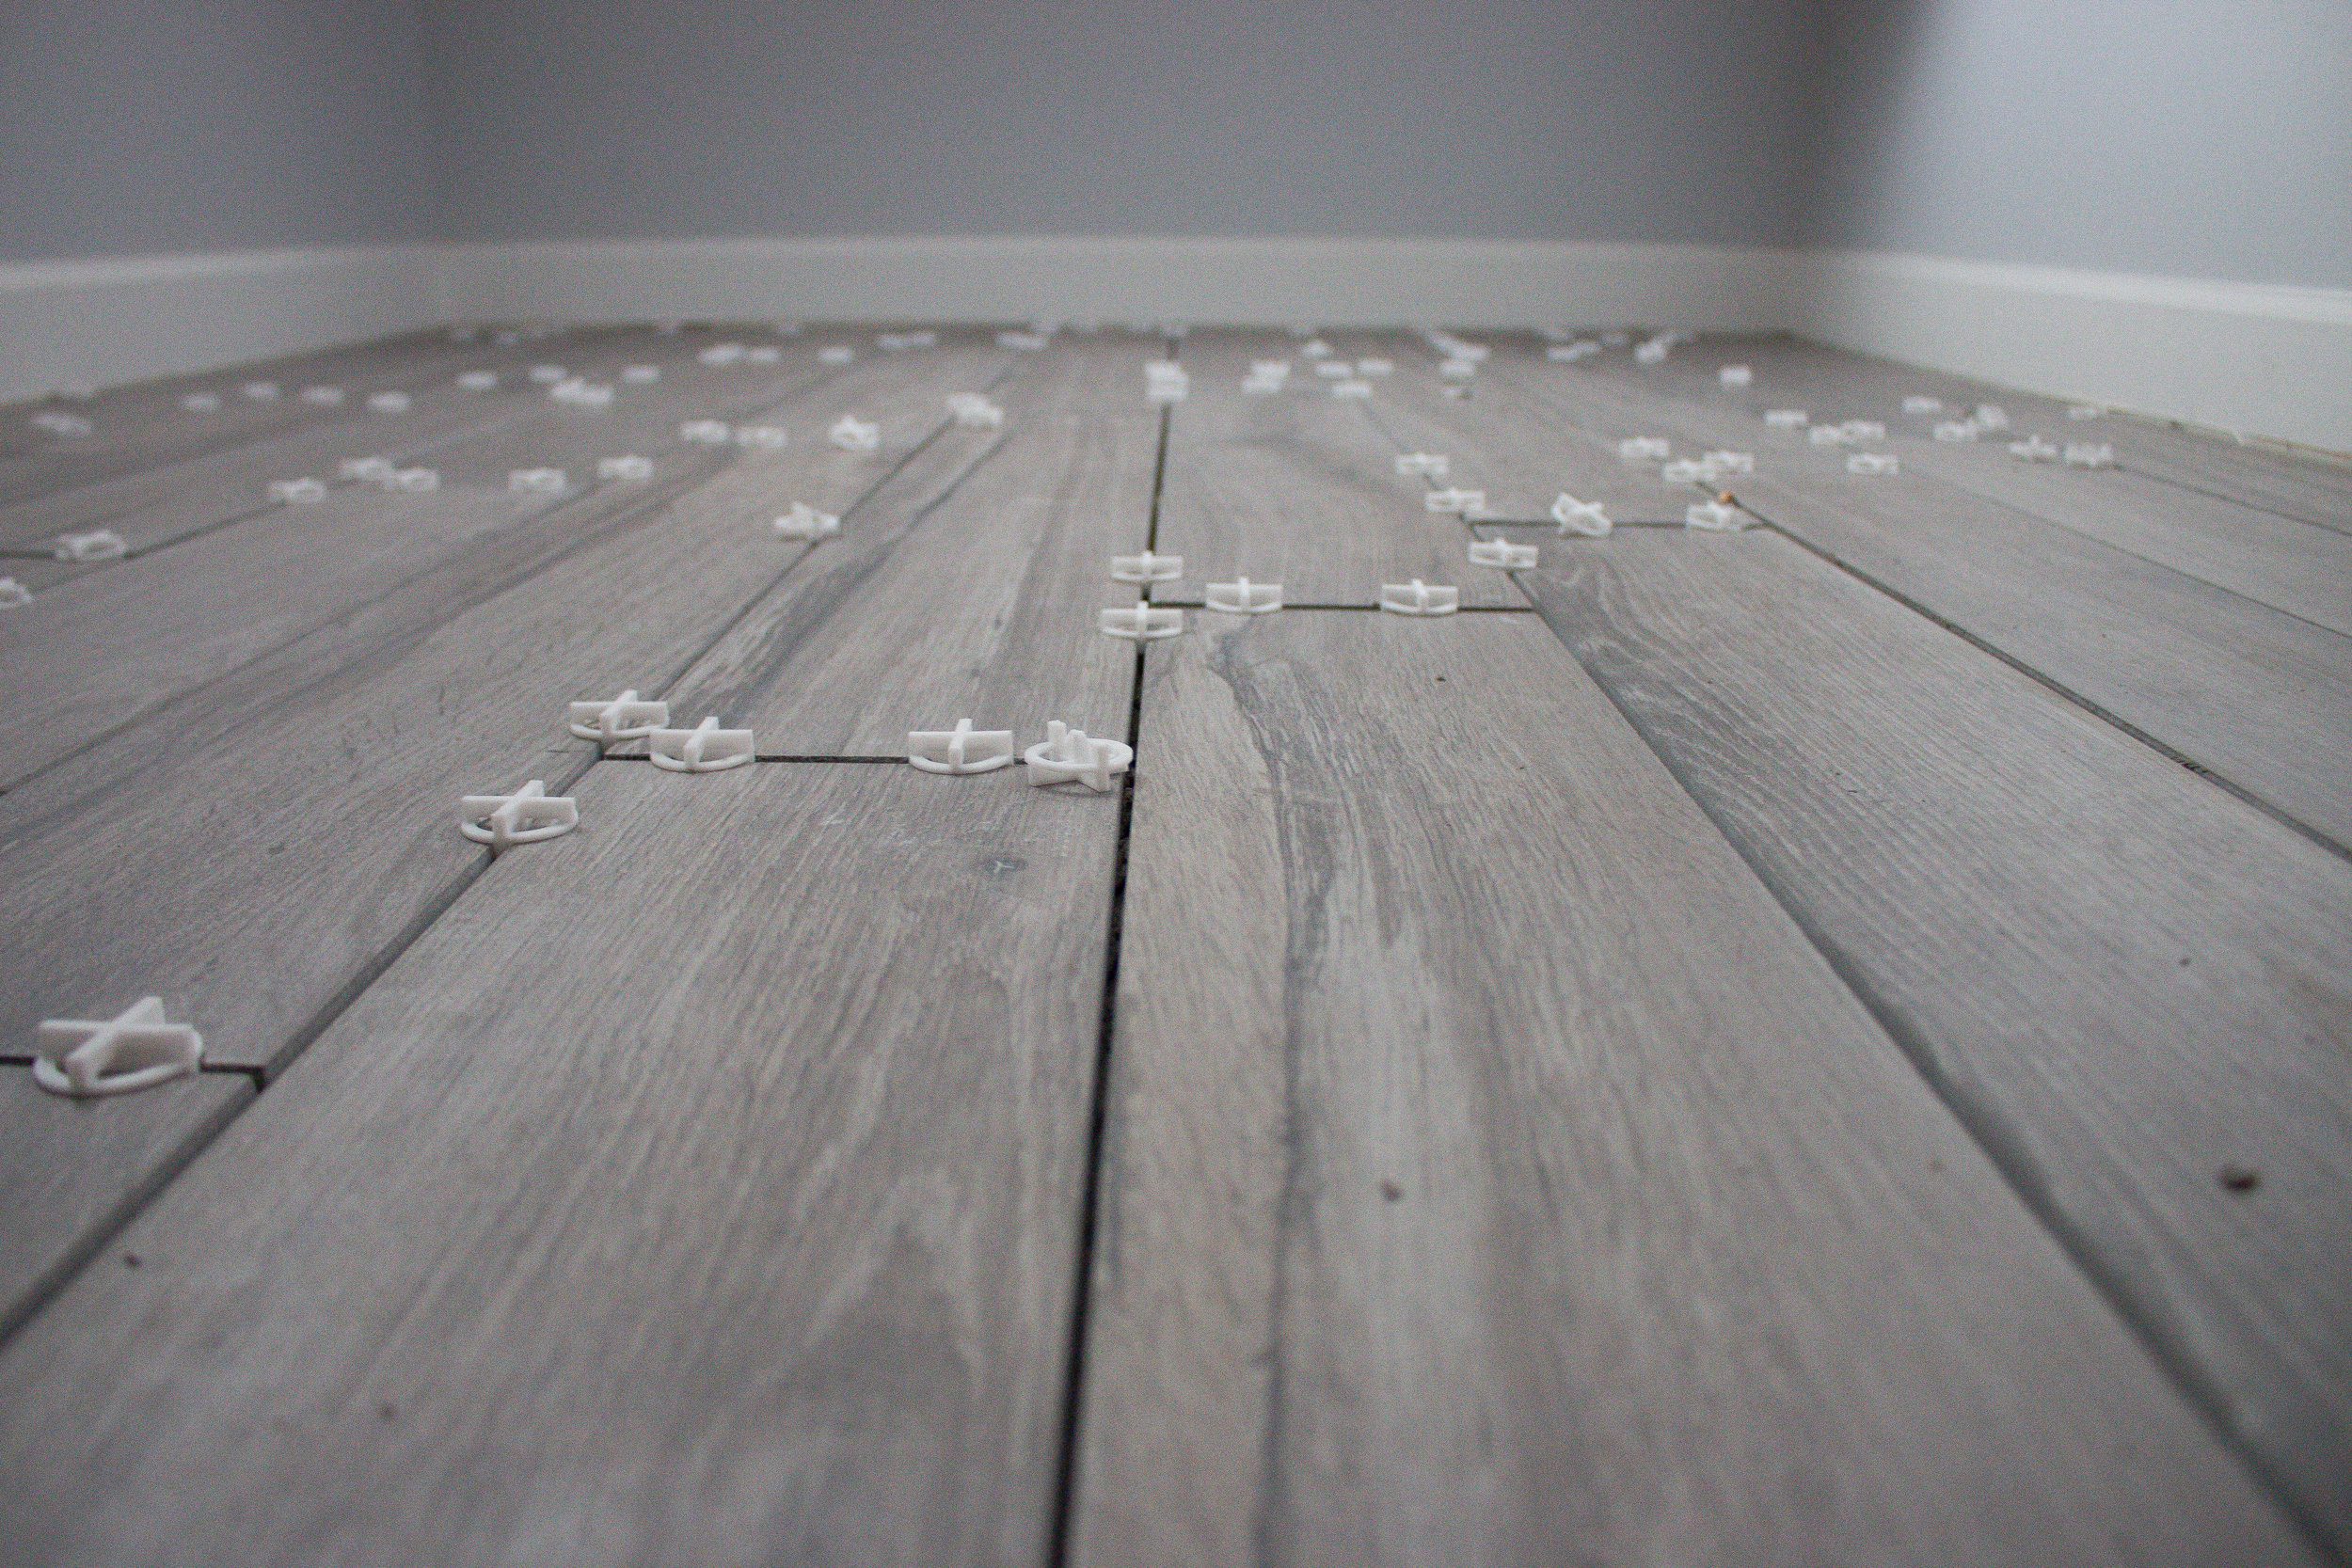 We recommend allowing your grout to dry for up to 72 hours before any heavy use of the new flooring.